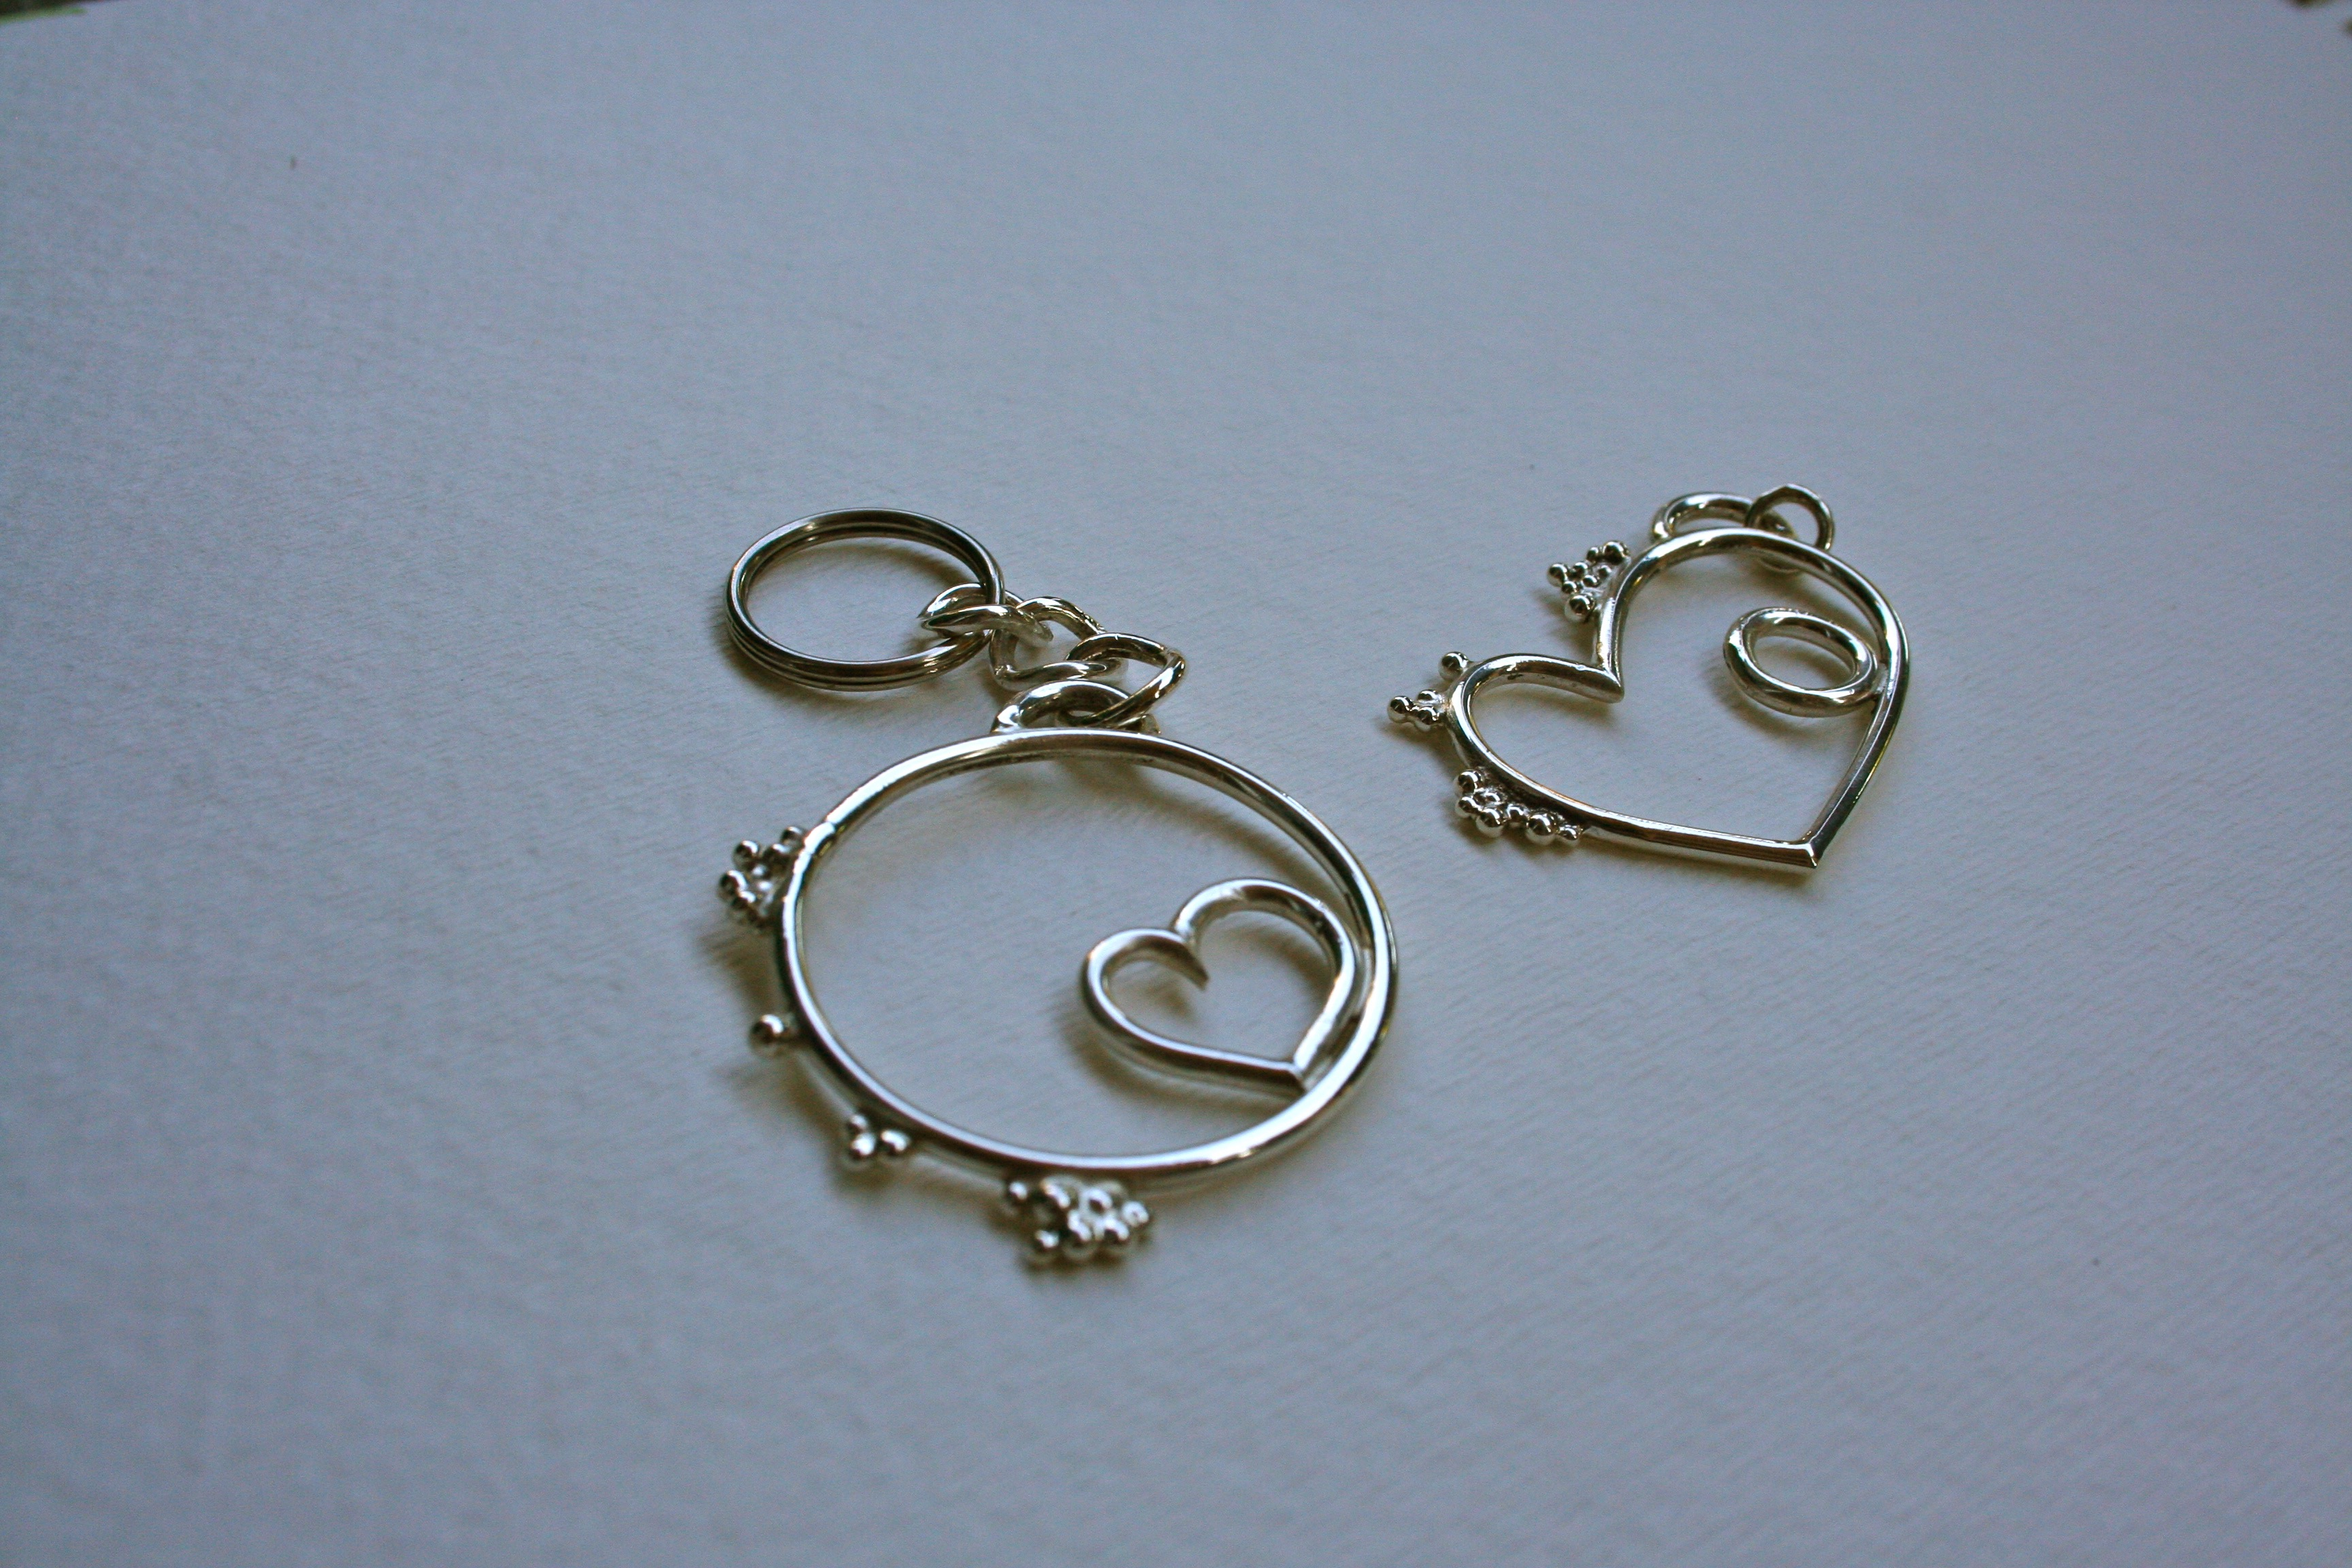 Keychain and Necklace pair